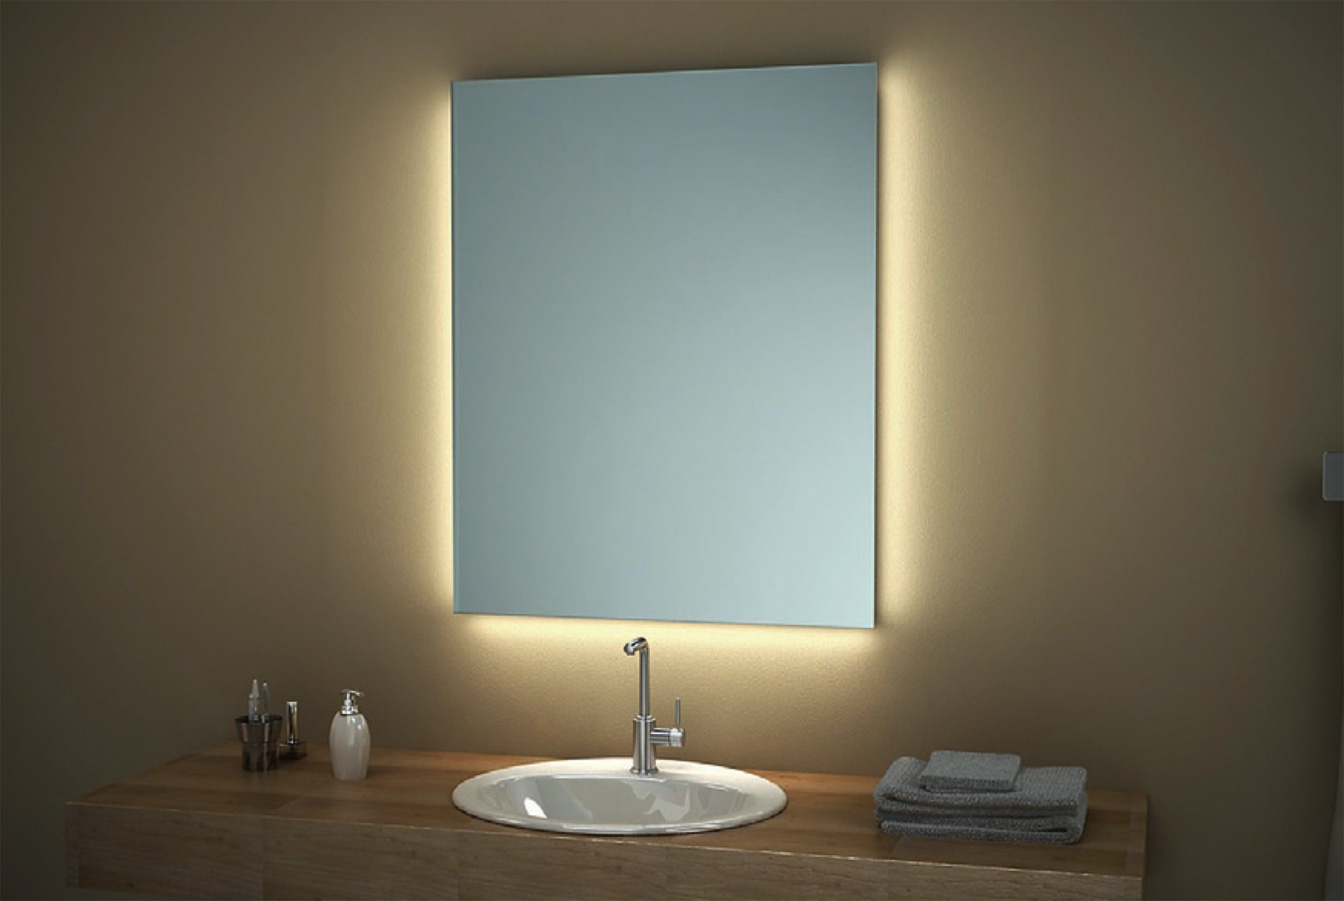 Led Lampa Badrum Best badrum images bathroom inspiration Editha led inbyggd spotlight för